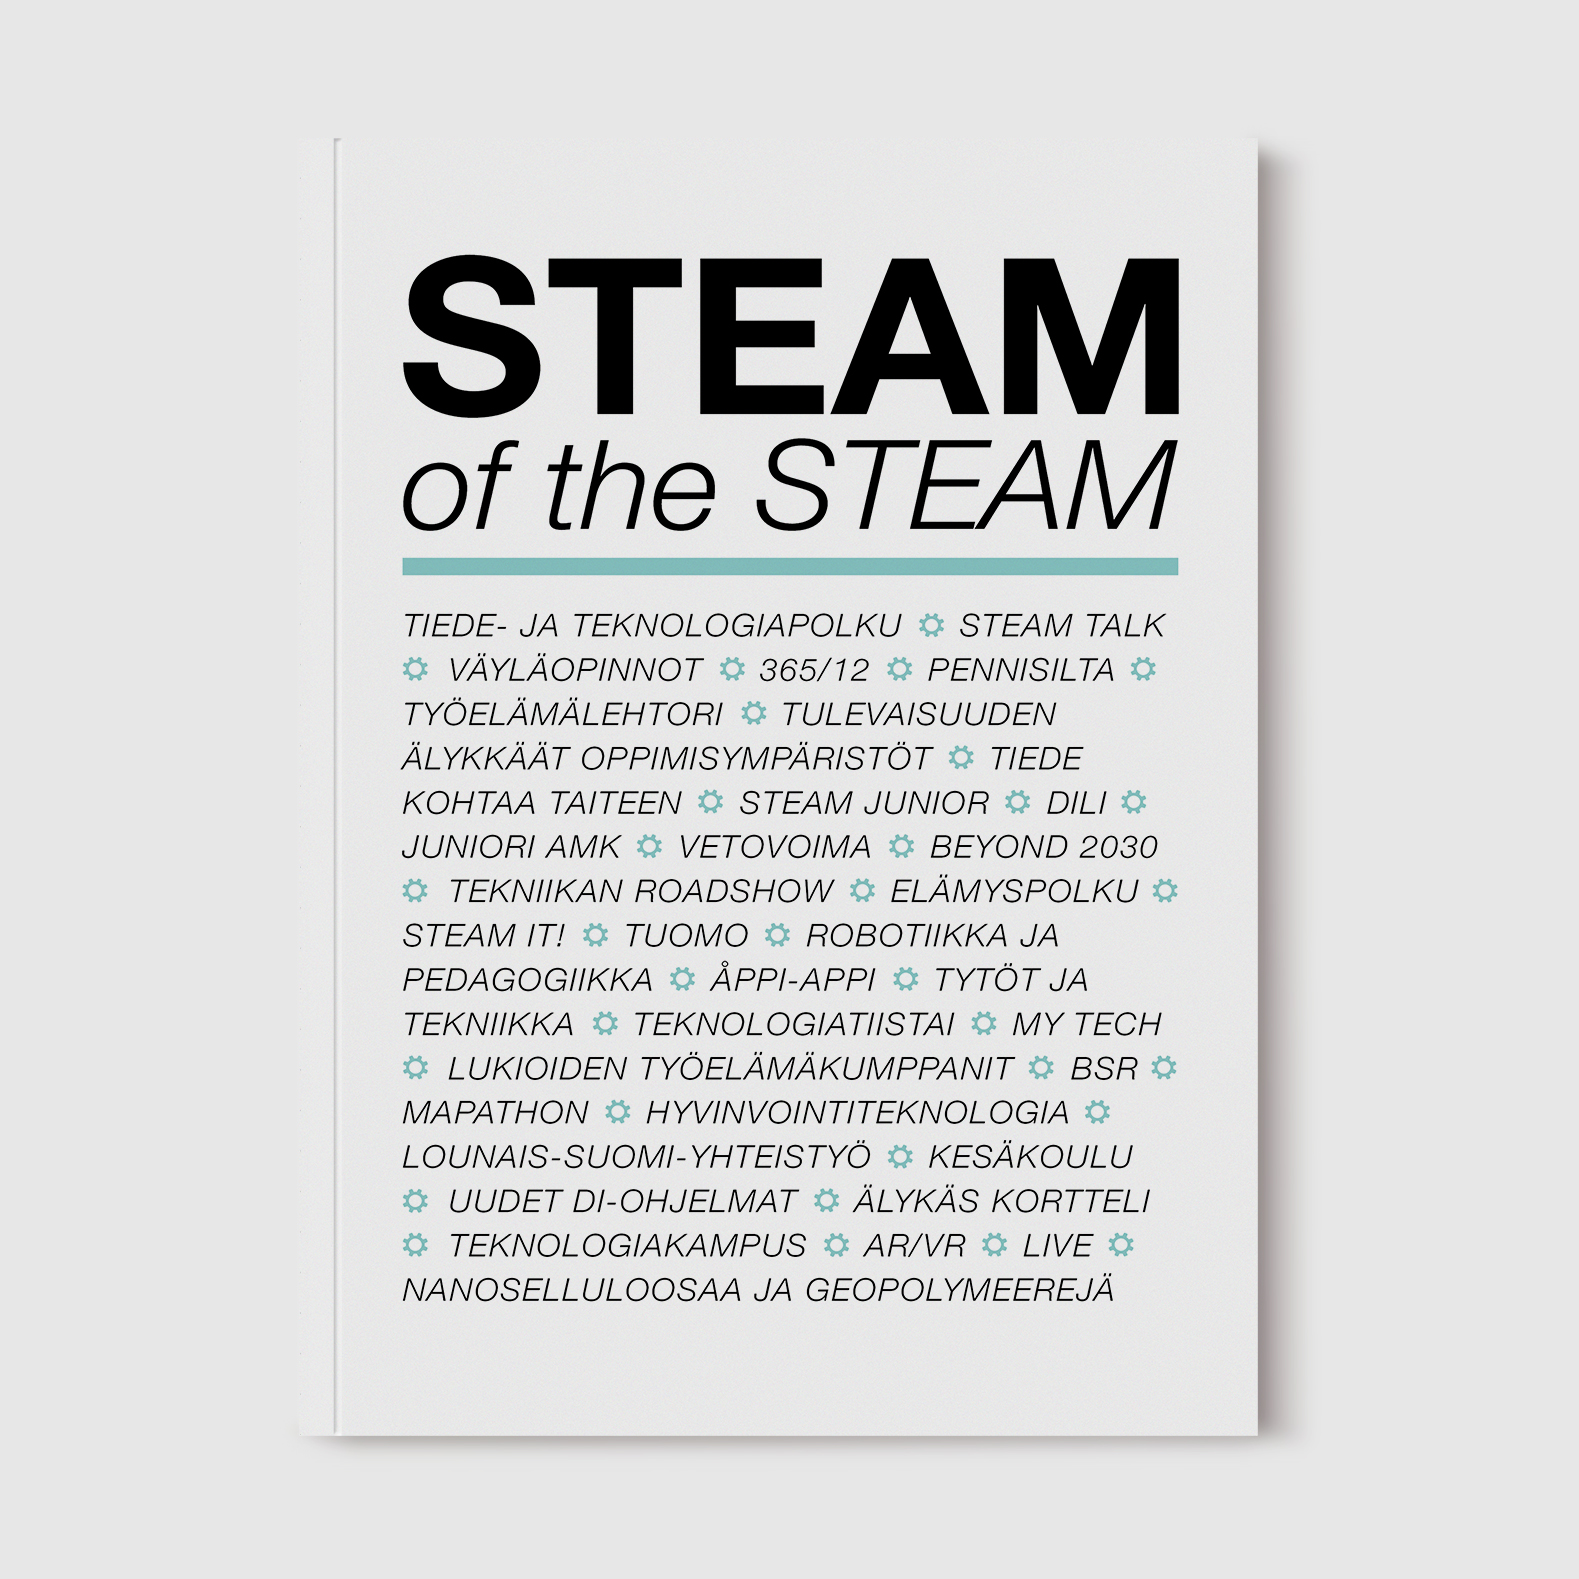 STEAM of the STEAM